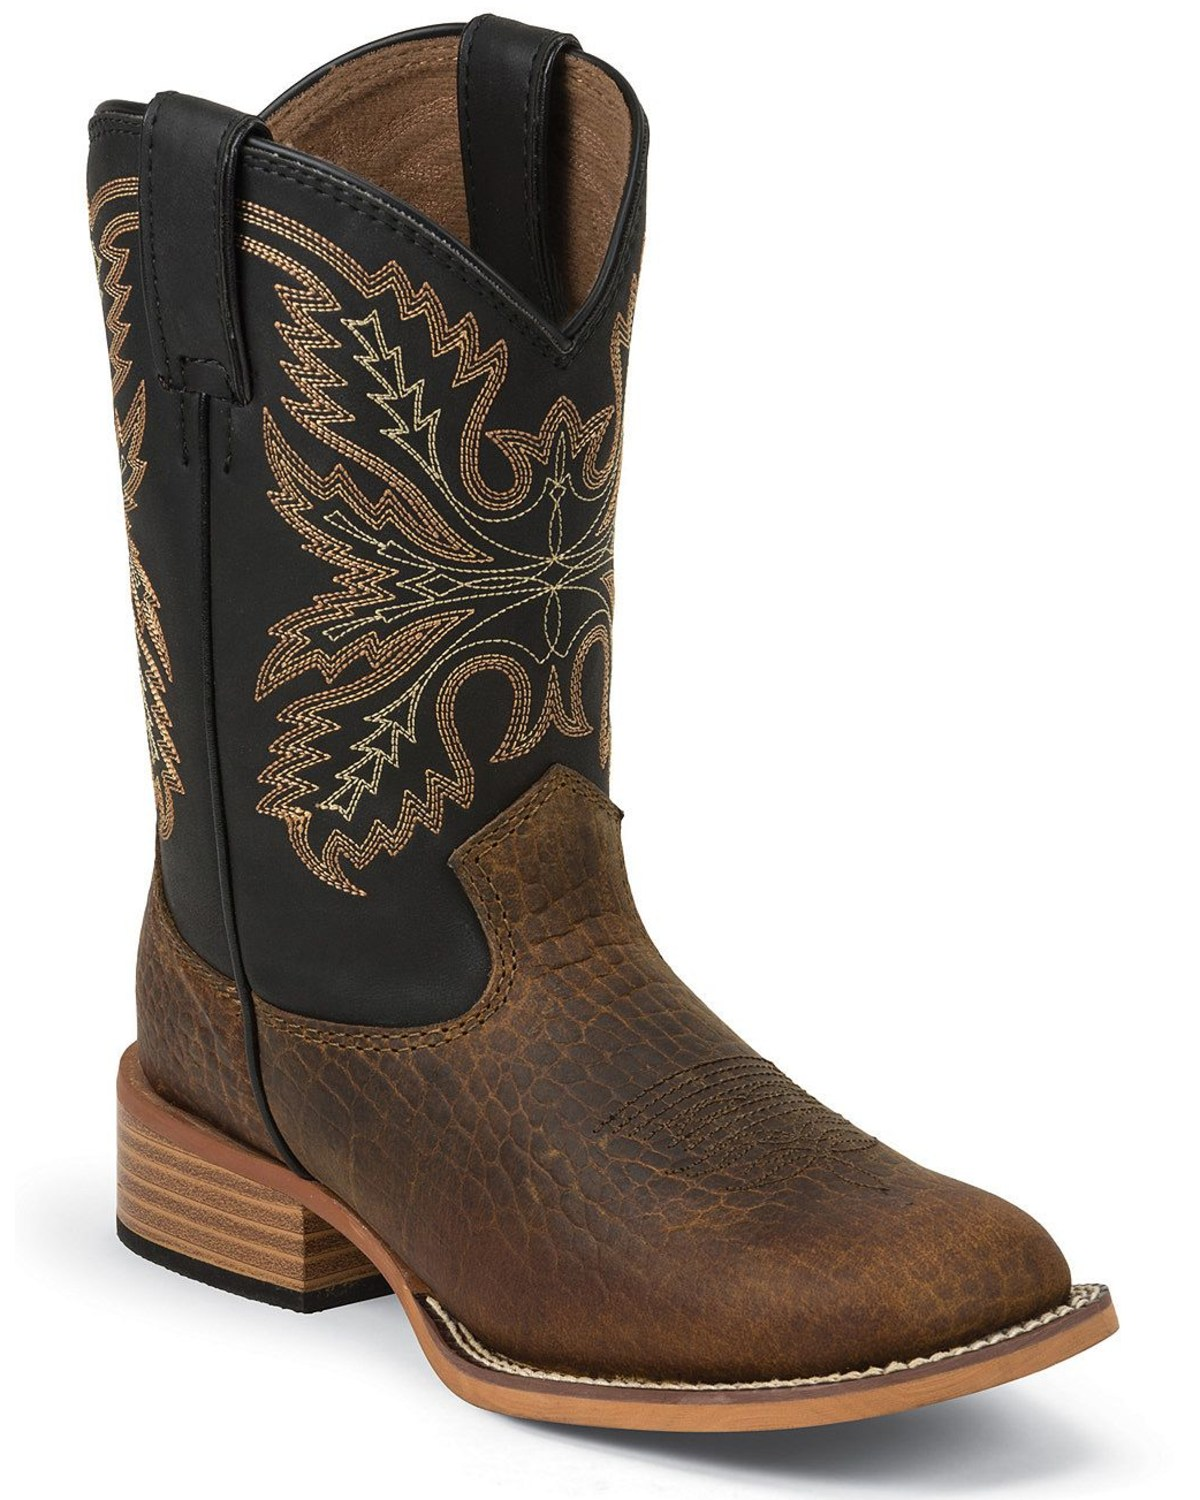 Boot Barn has kids' boots and shoes for children of all ages; we have youth sizes 3 to 7, children sizes 8 to 3, as well as toddler and infant boots and shoes for girls and boys. Dan Past, Tony Lama, Ariat, and John Deere are just some of the many top brands we have available.